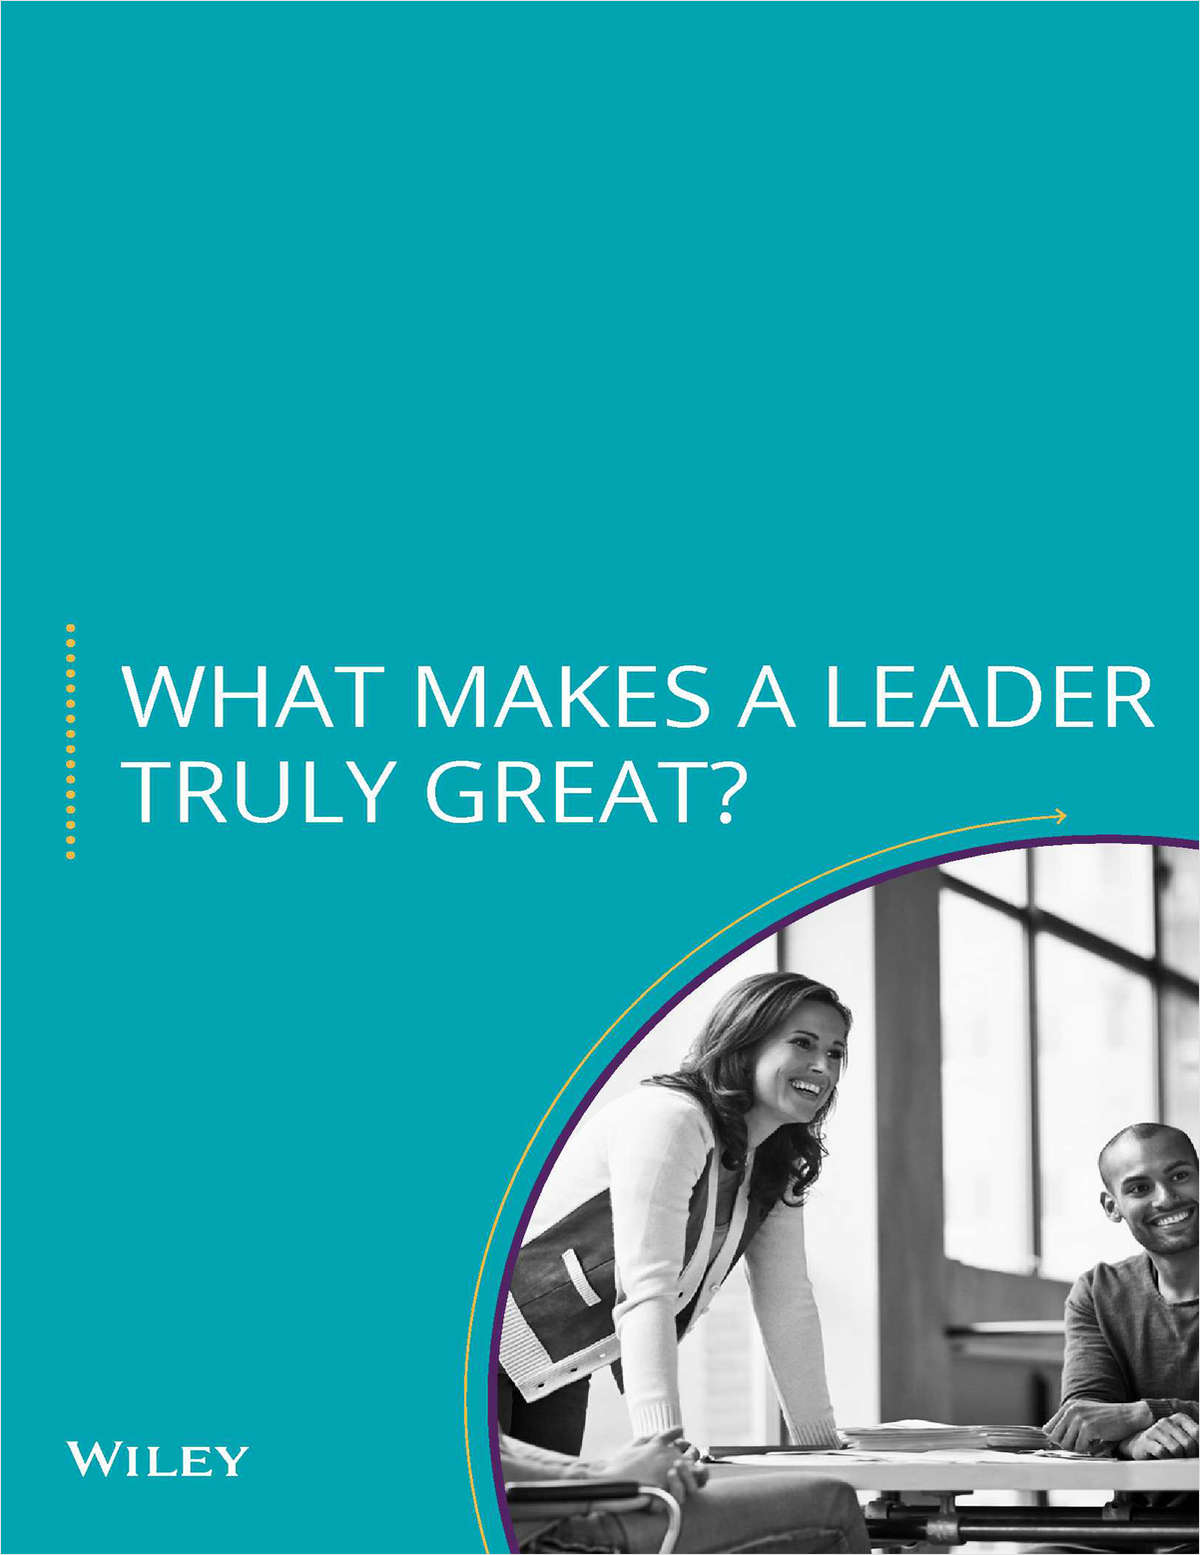 What Makes a Leader Truly Great?